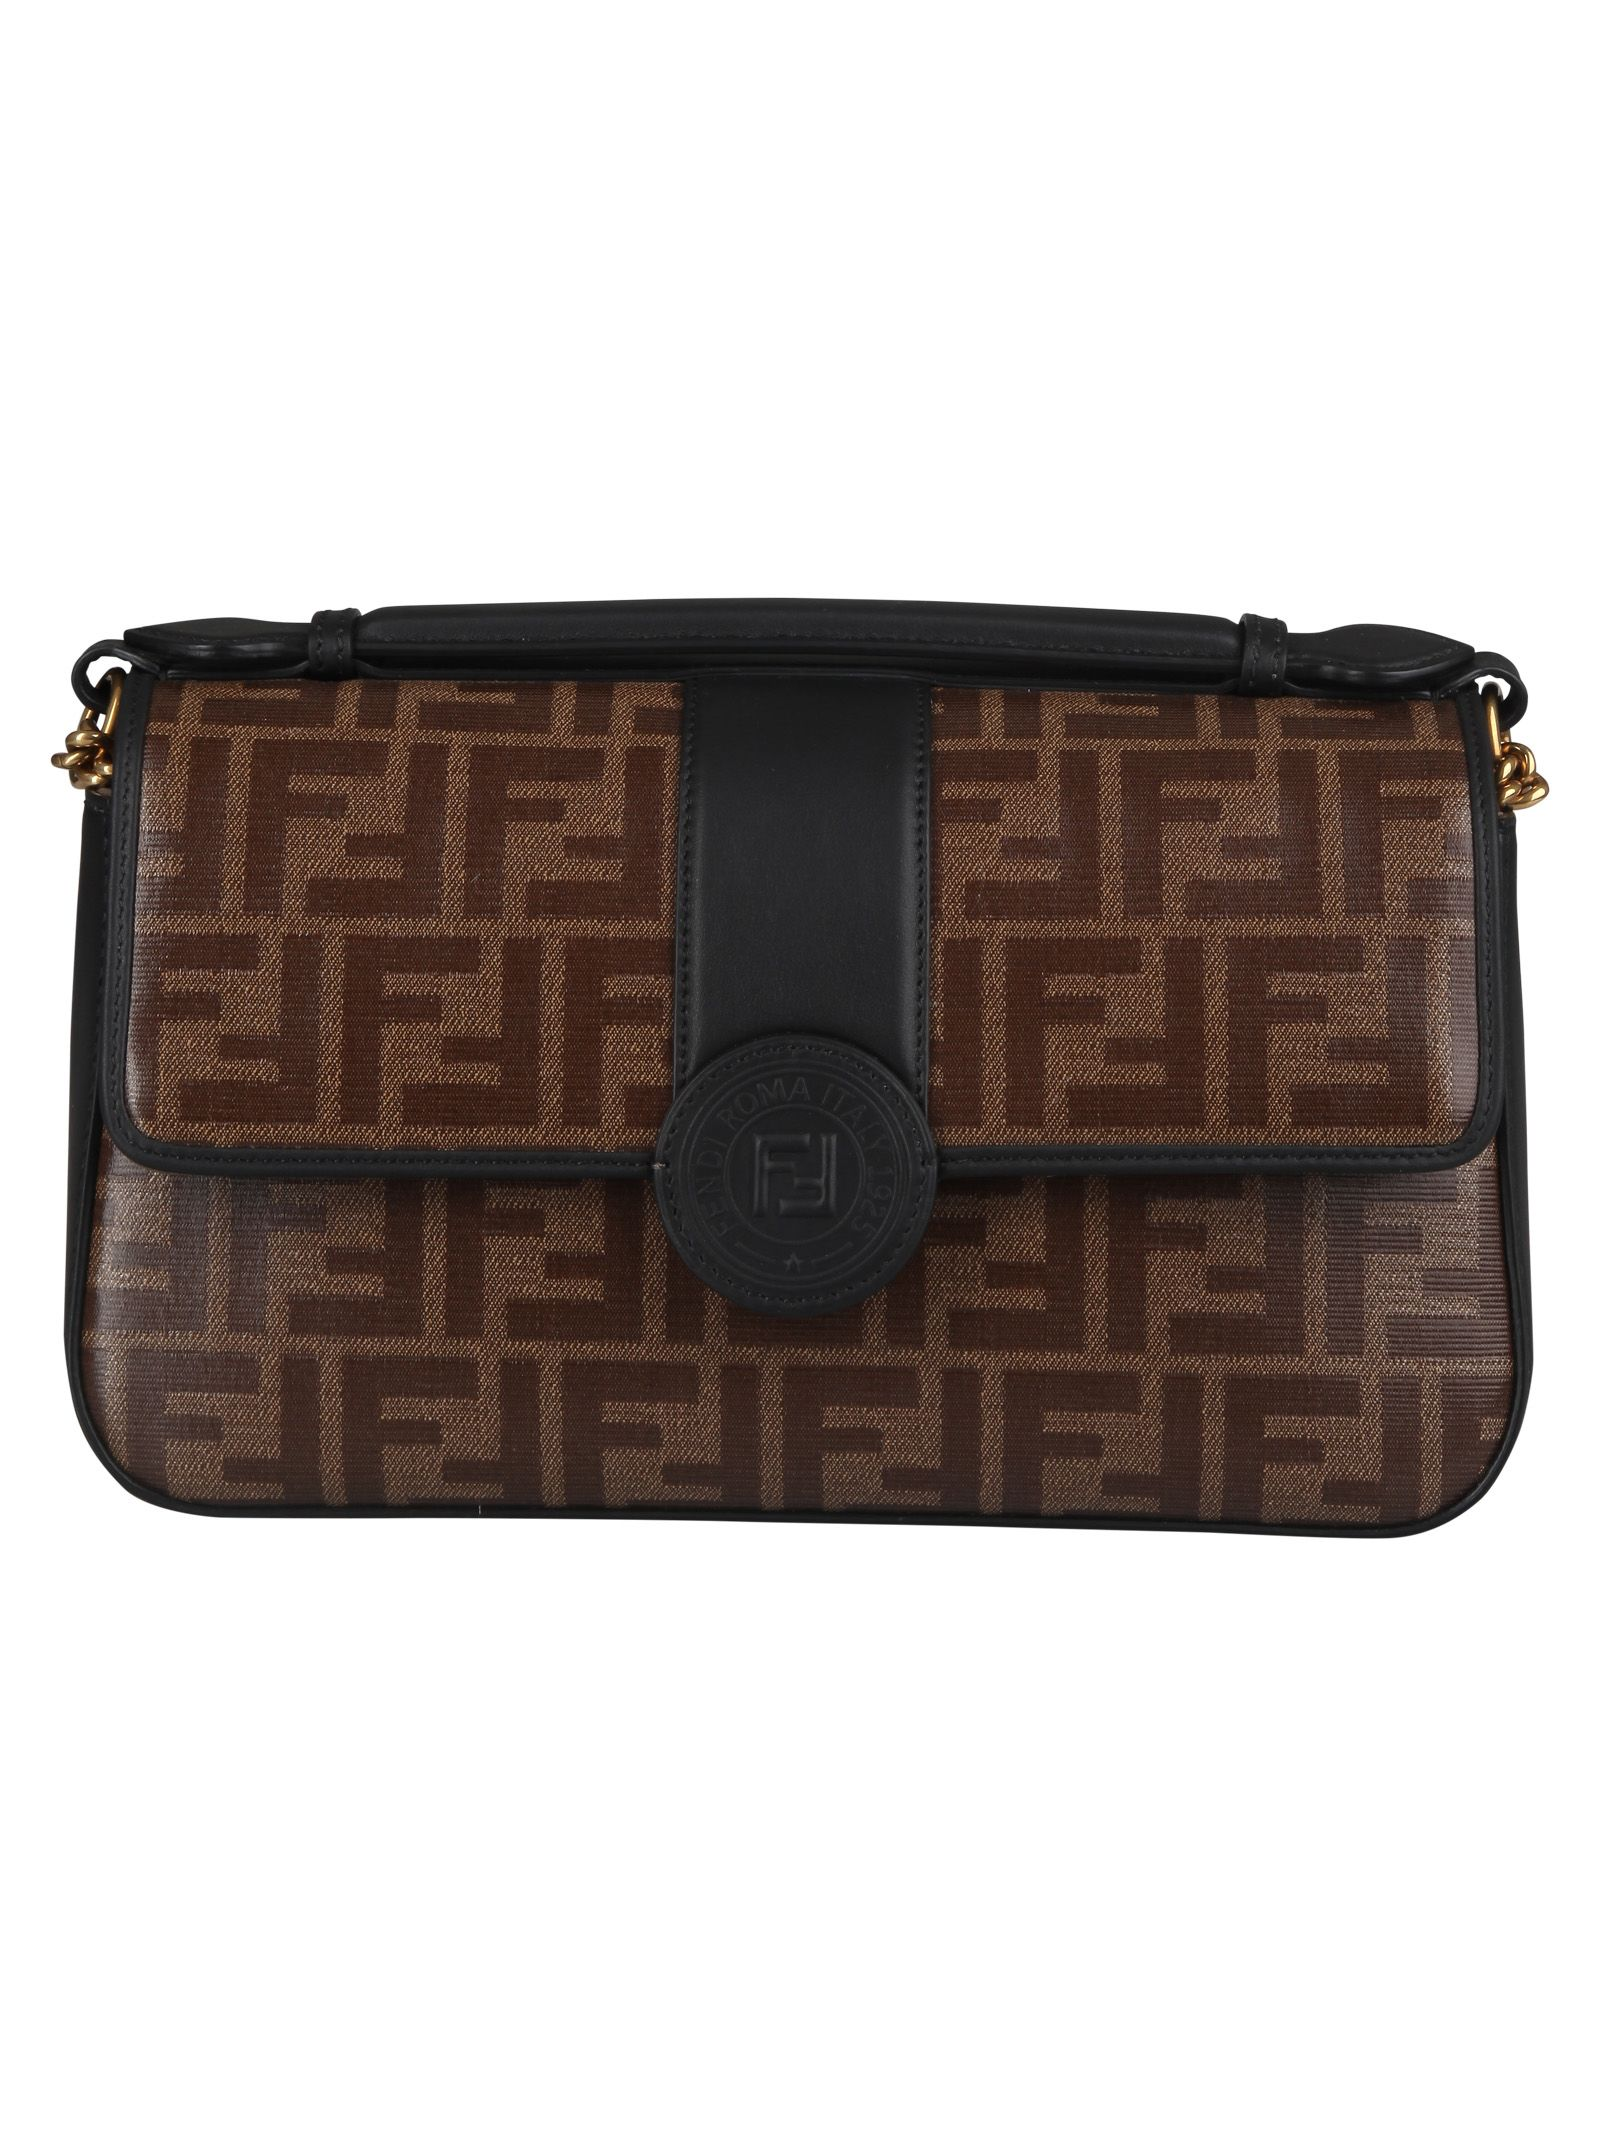 4b6c697f2026 Fendi Fendi Double F Shoulder Bag - Basic - 10765573